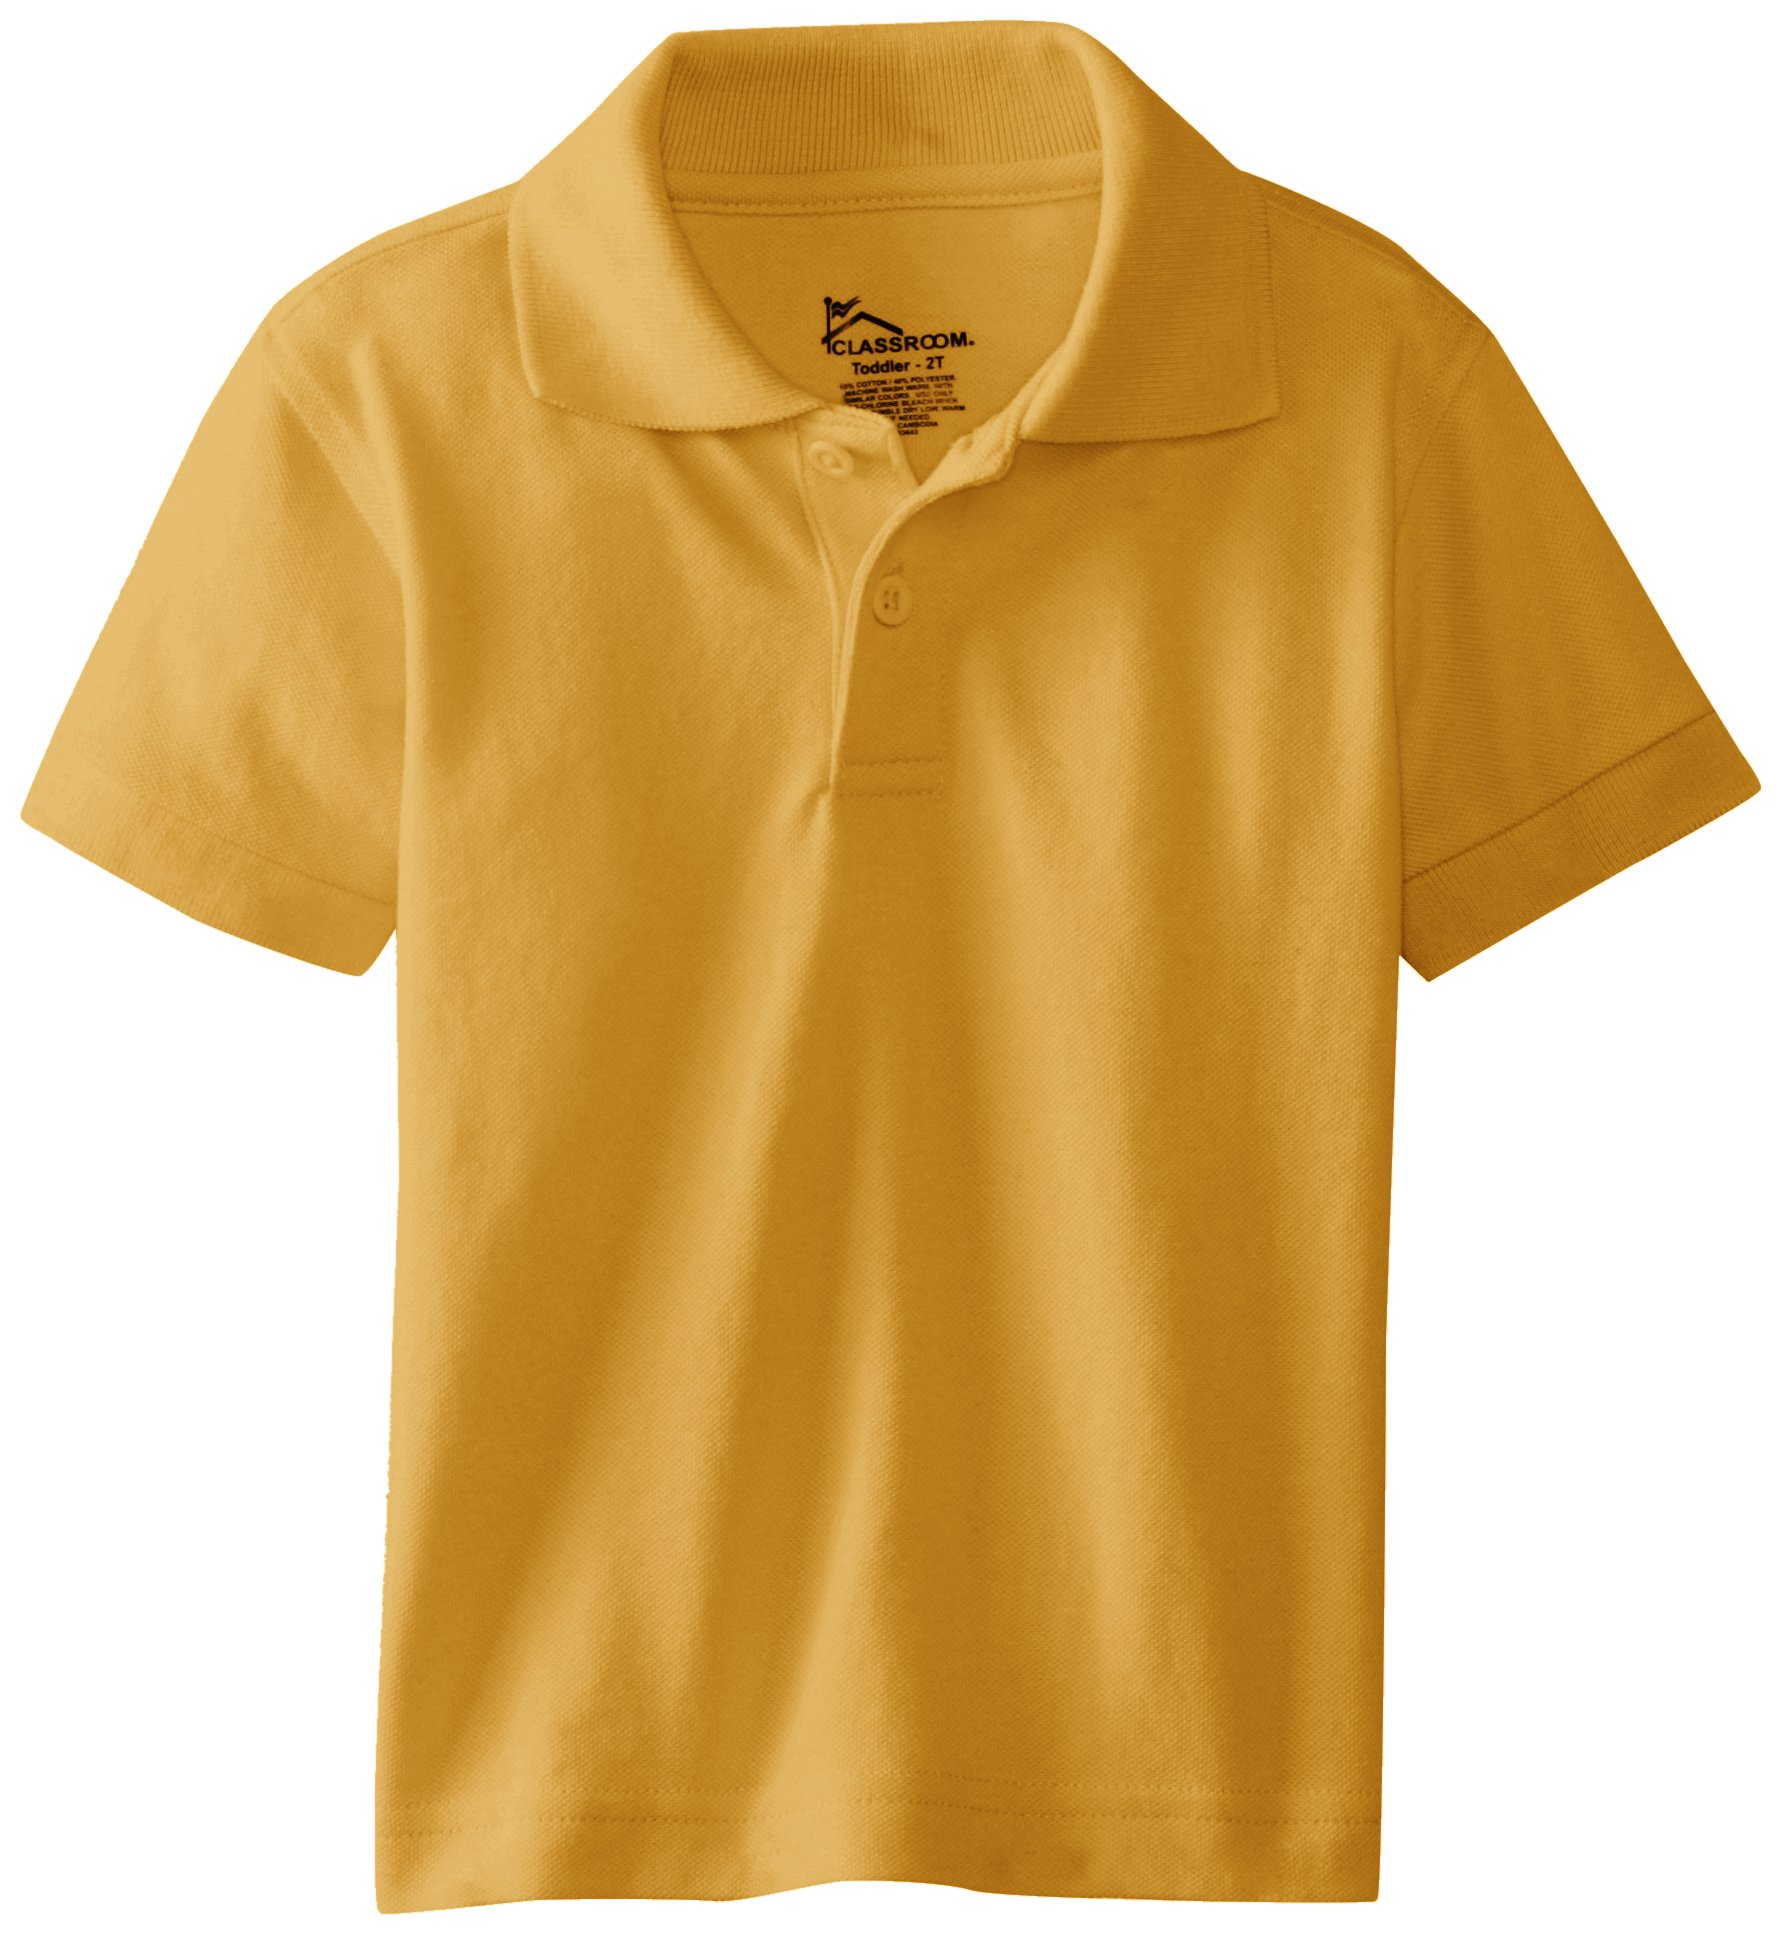 CLASSROOM Little Boys' Preschool Unisex Short Sleeve Pique Polo, Gold, 4T